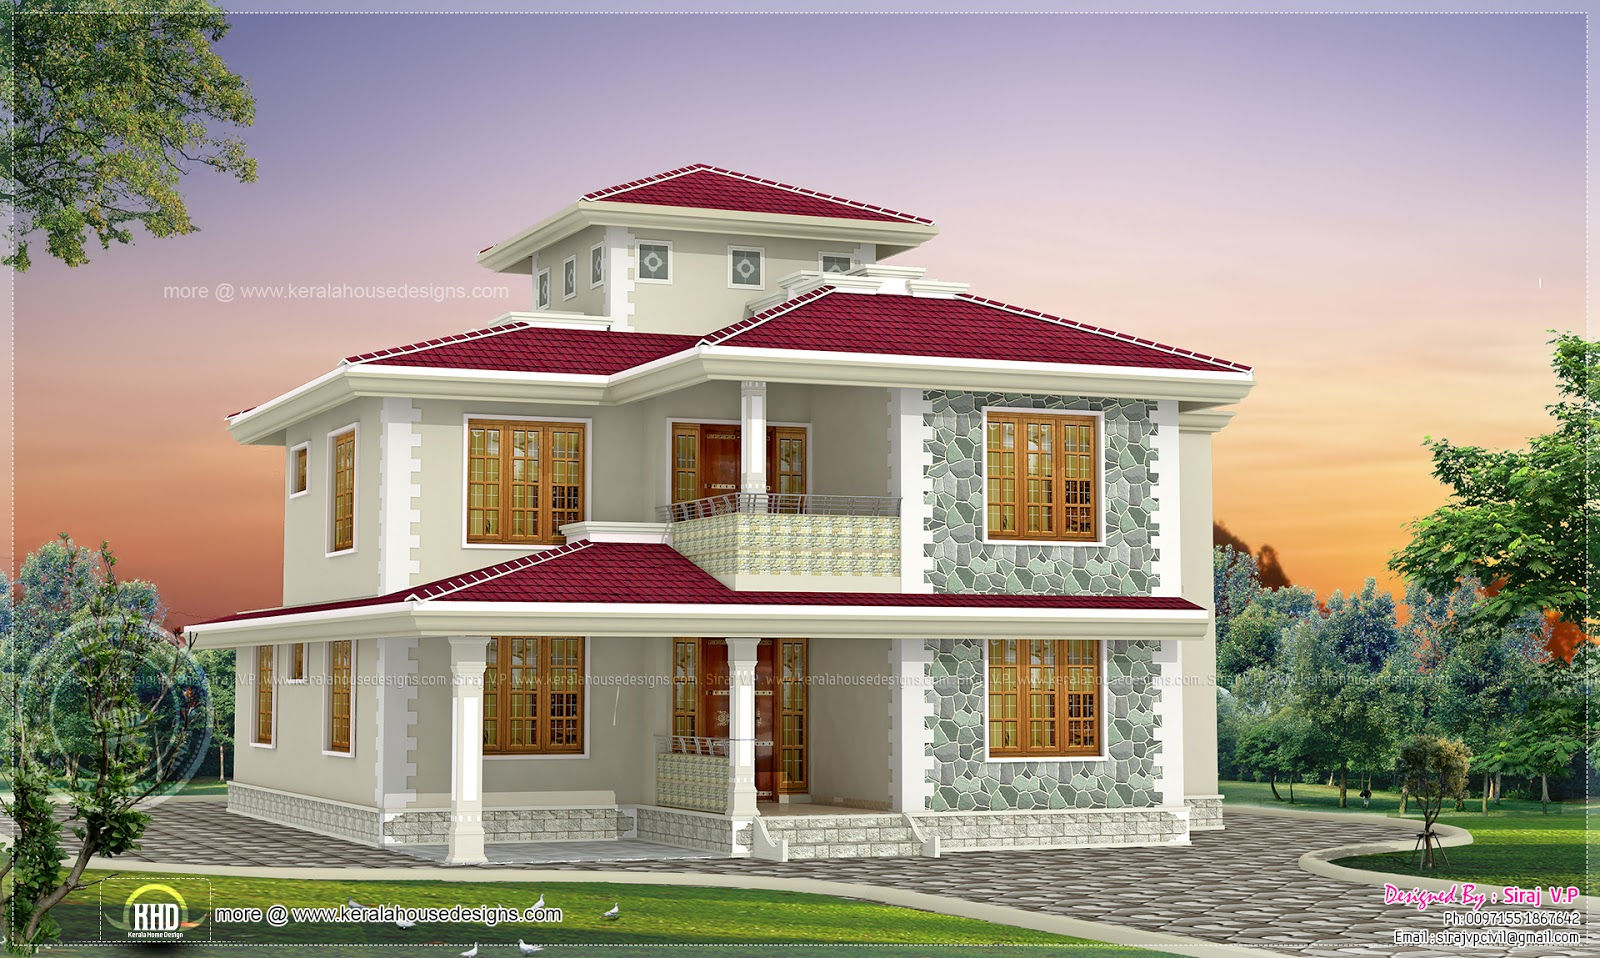 4 bhk kerala style home design kerala home design and House photos gallery